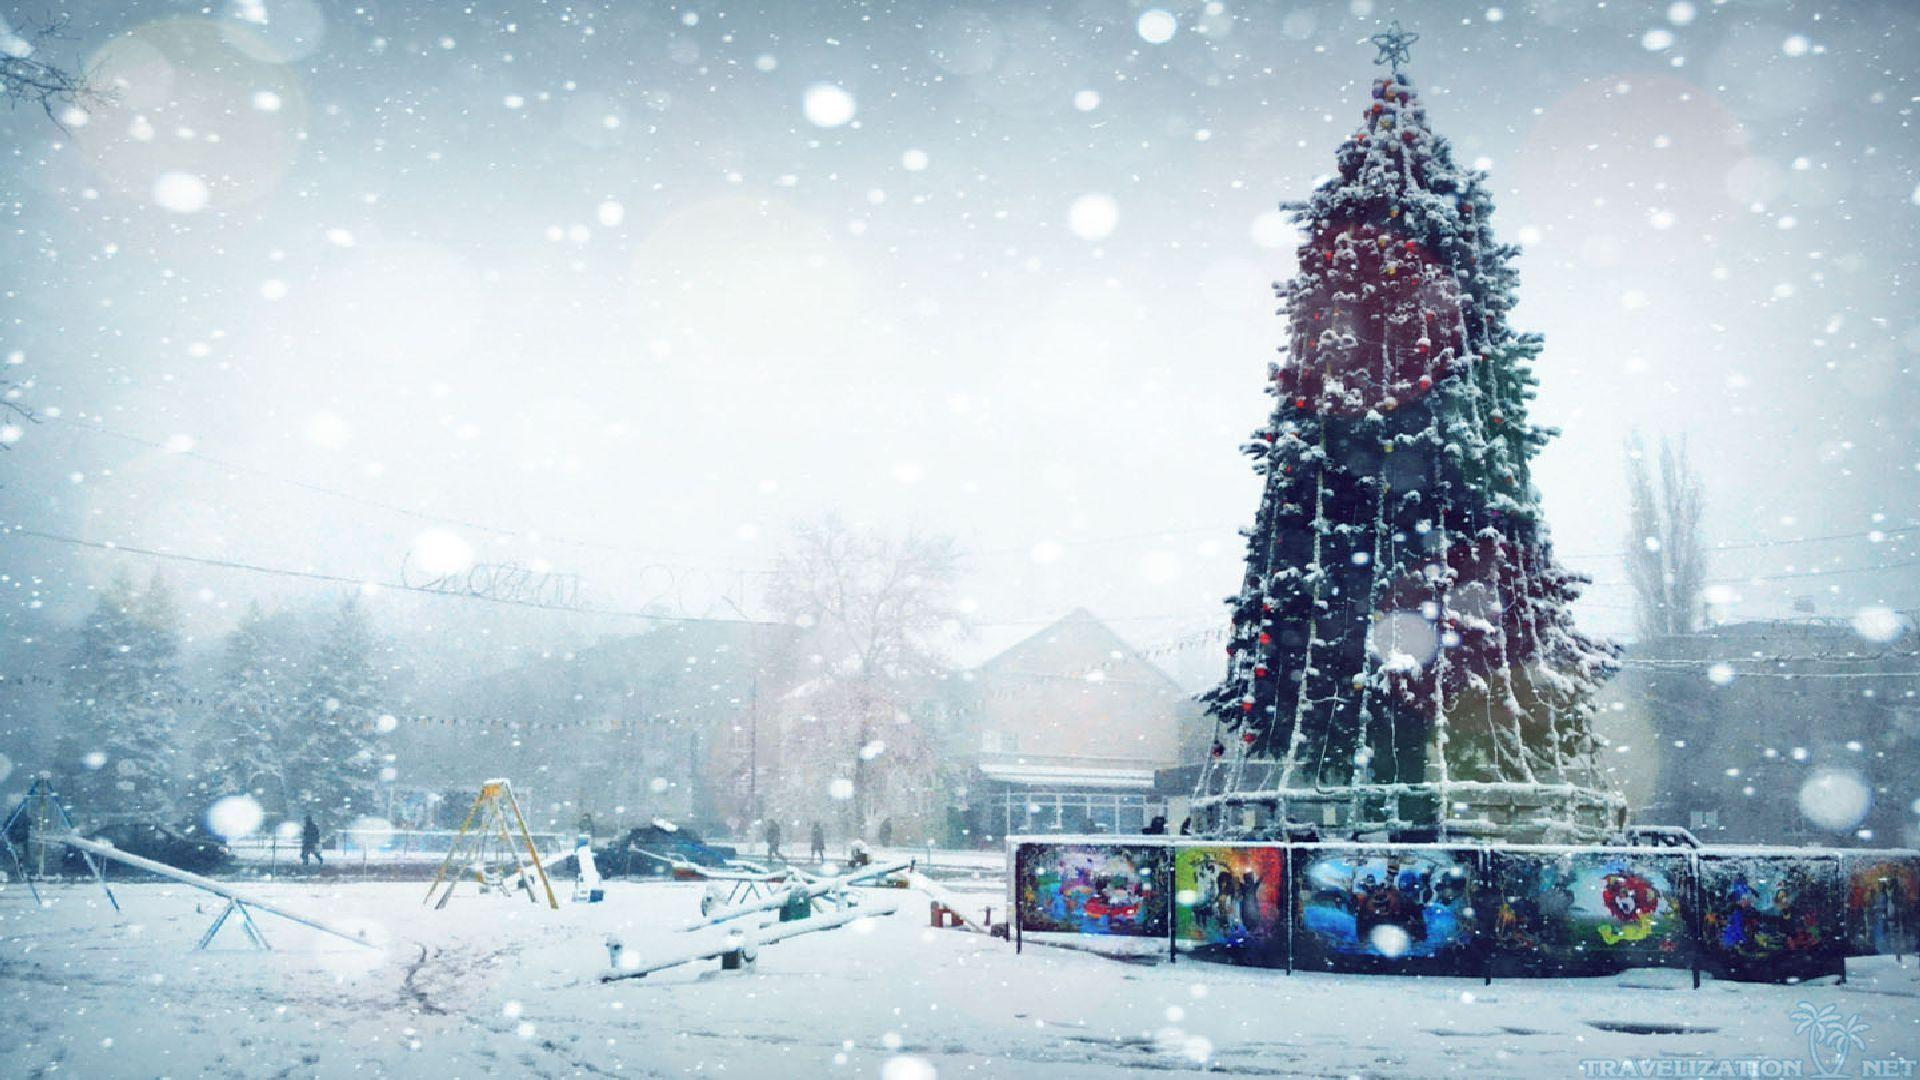 Winter Christmas Wallpapers 1920x1080